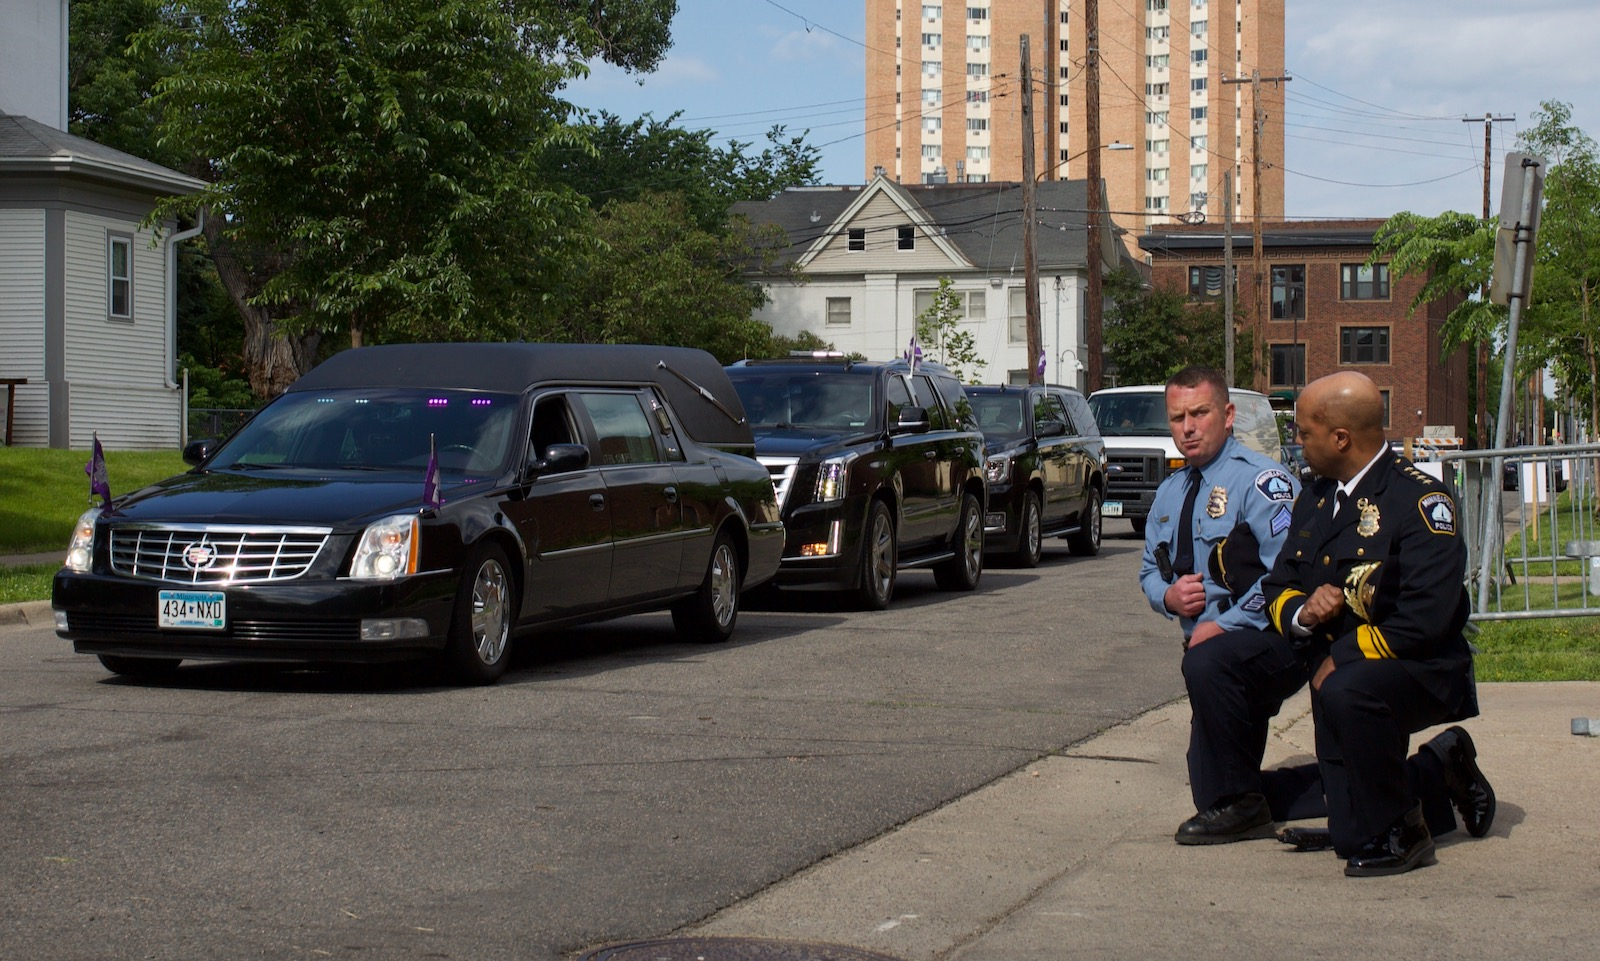 Minneapolis Police Chief Medaria Arradondo, accompanied by a MPD sergeant, taking a knee as the remains of George Floyd are driven to a memorial service in his honor, Minneapolis, Minnesota, June 4, 2020